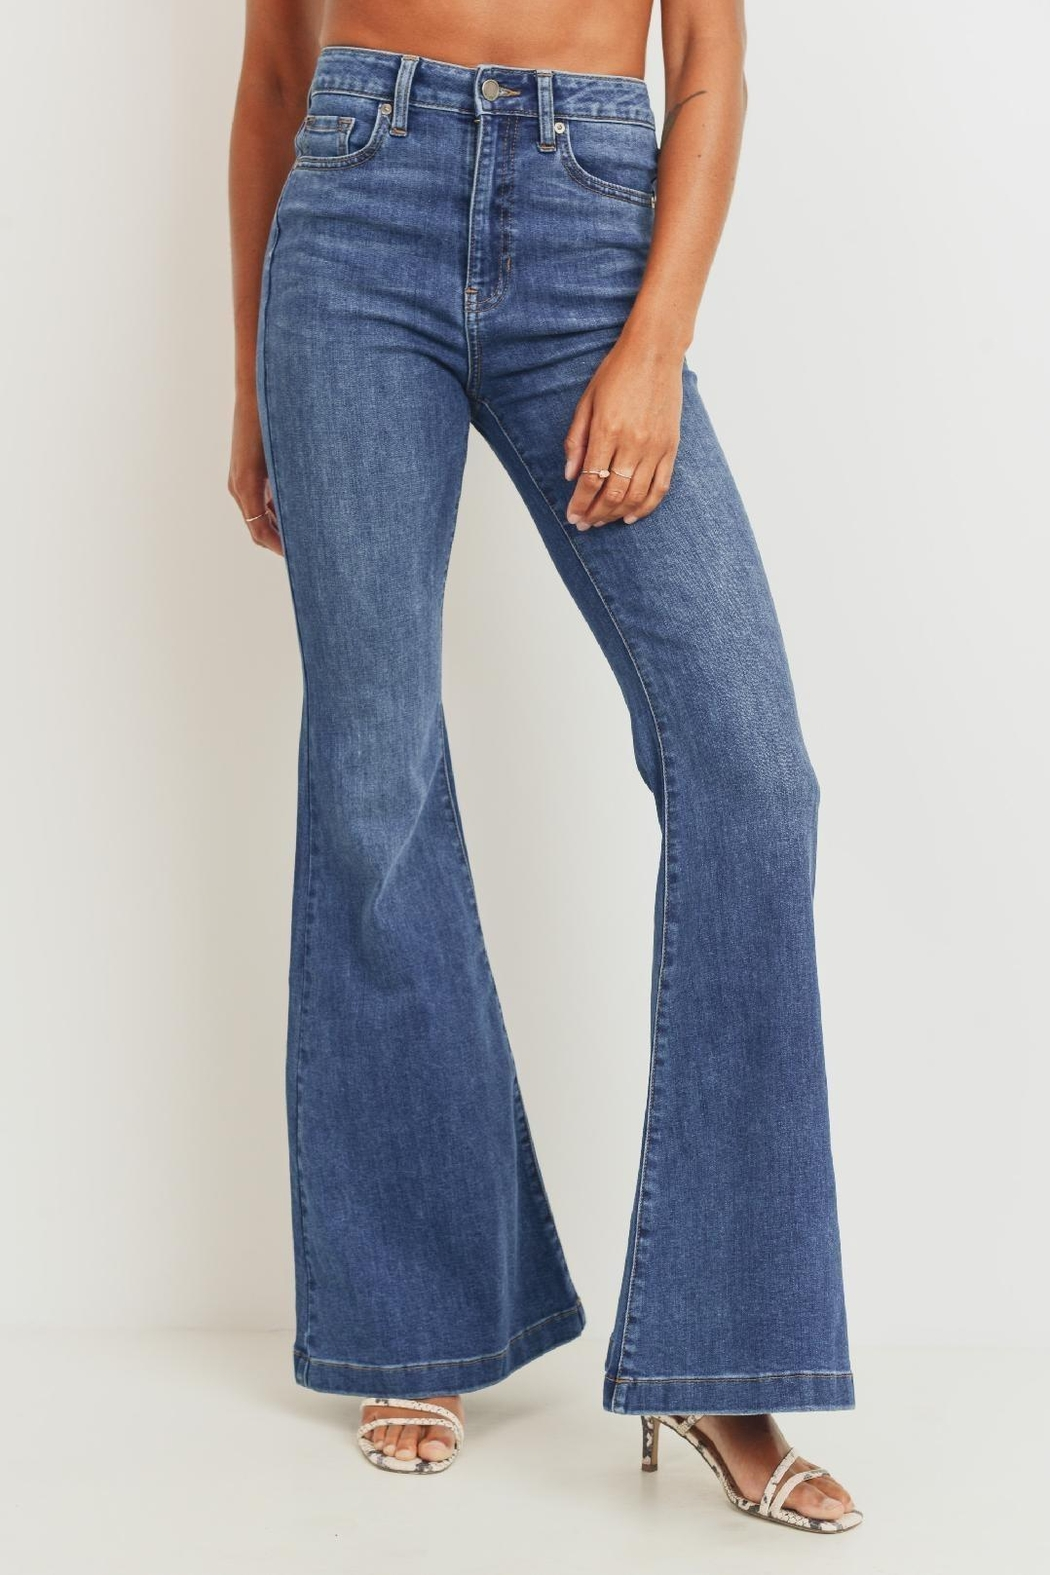 JBD The Cher Ultra High Waist Bell Bottom Jeans - Side Cropped Image